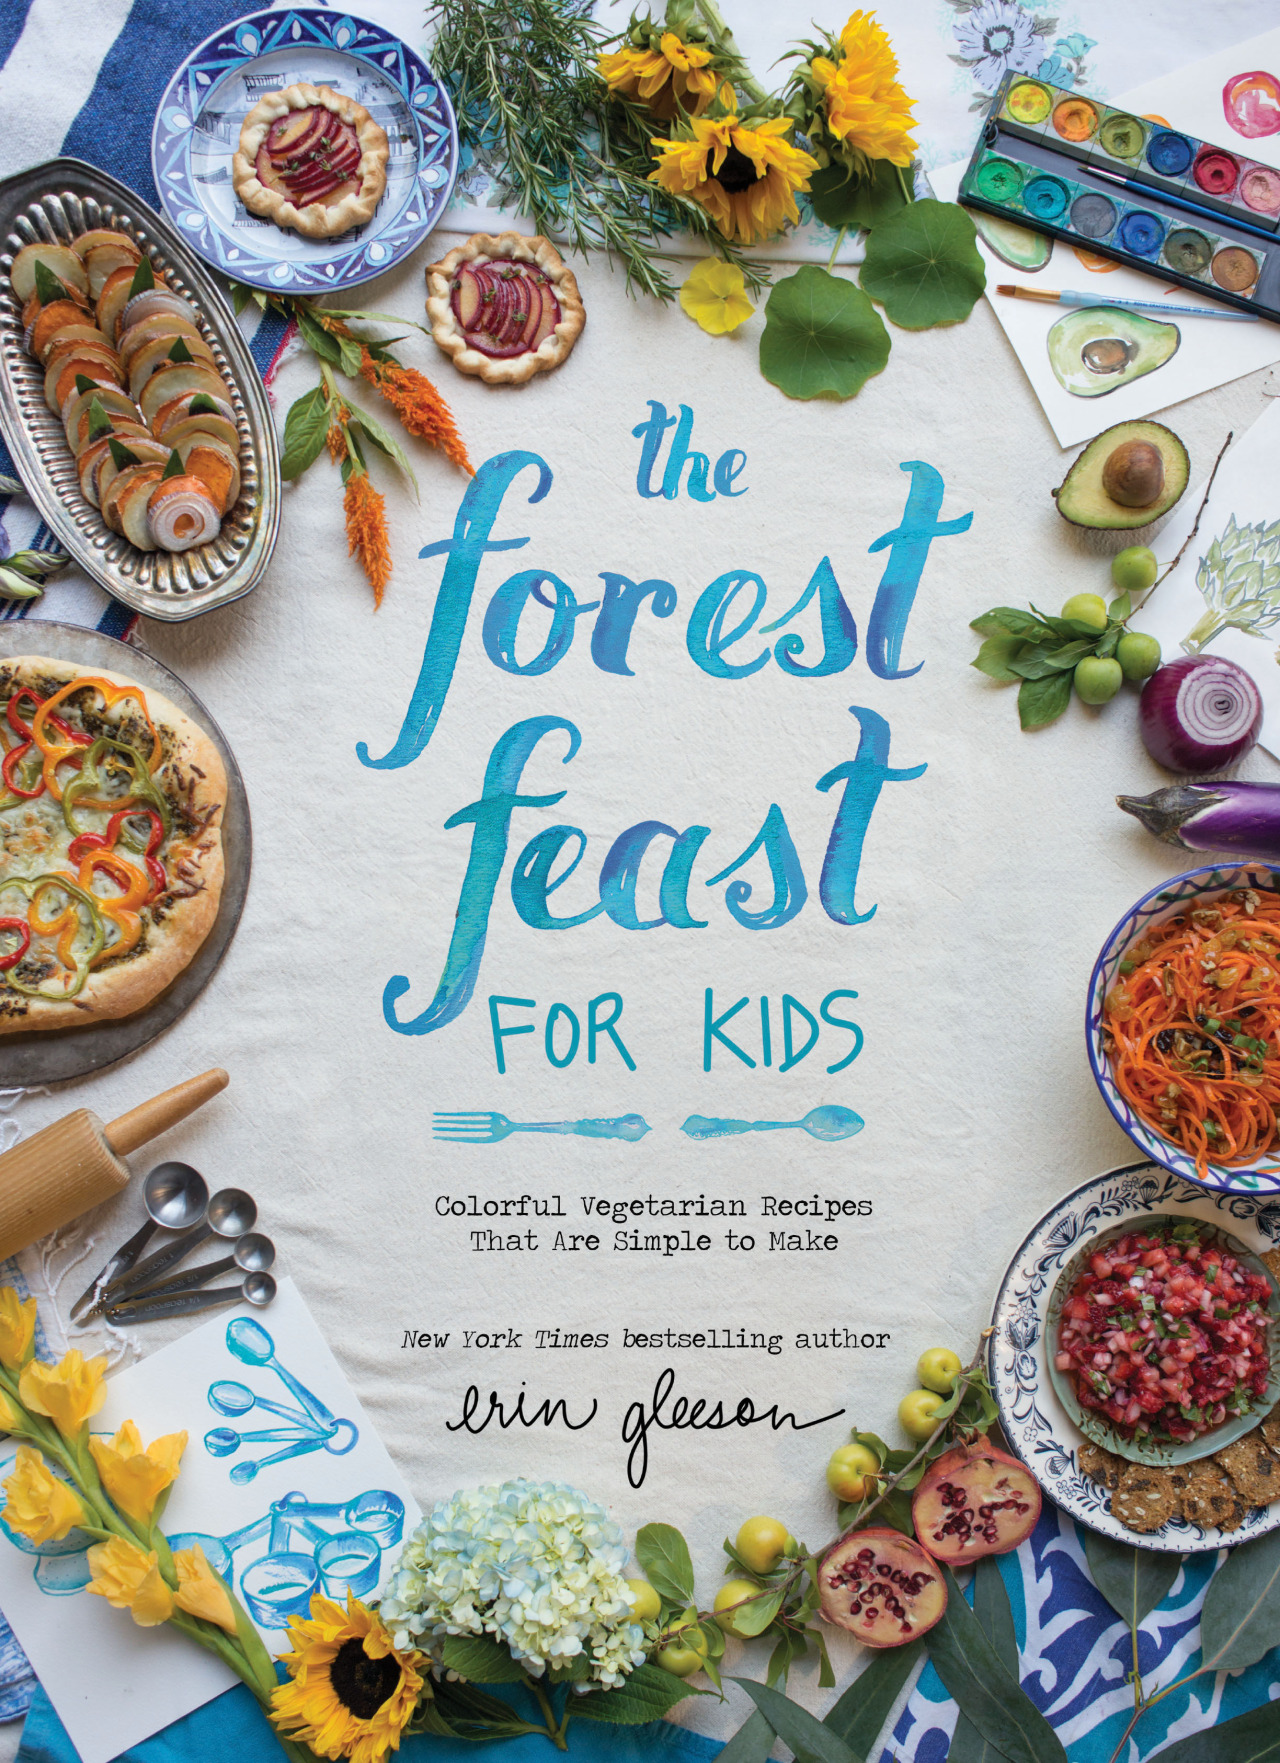 the forest feast for kids by erin gleeson